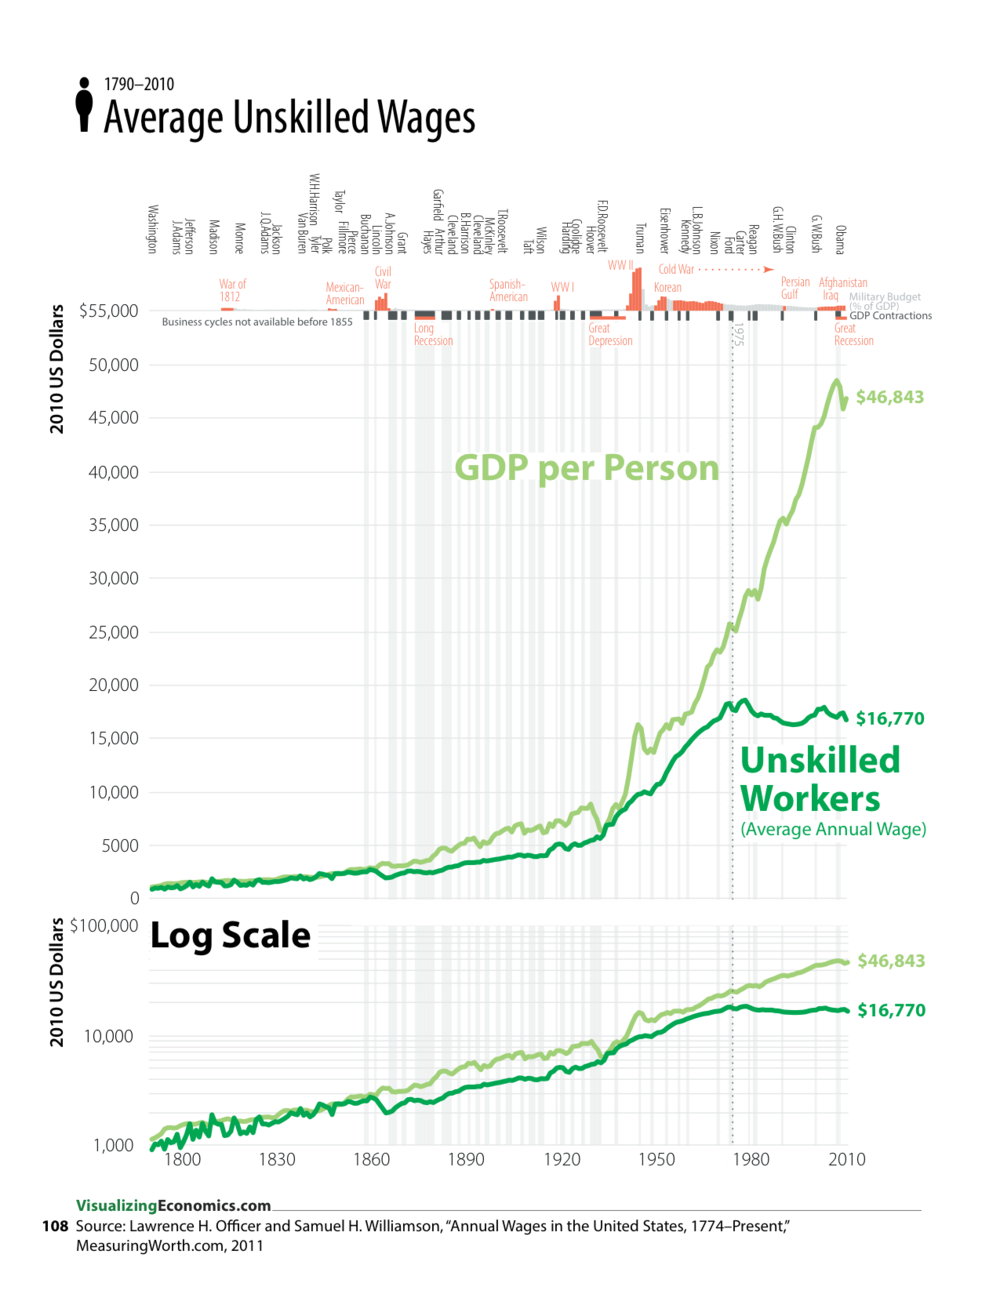 One of the many data series that haveexponentialgrowth. They are a challenge since I want to make the graphaccessibleto a wide (non-finance)audience but log graphs are very helpful when you need to see the relative changes across the entire time series.